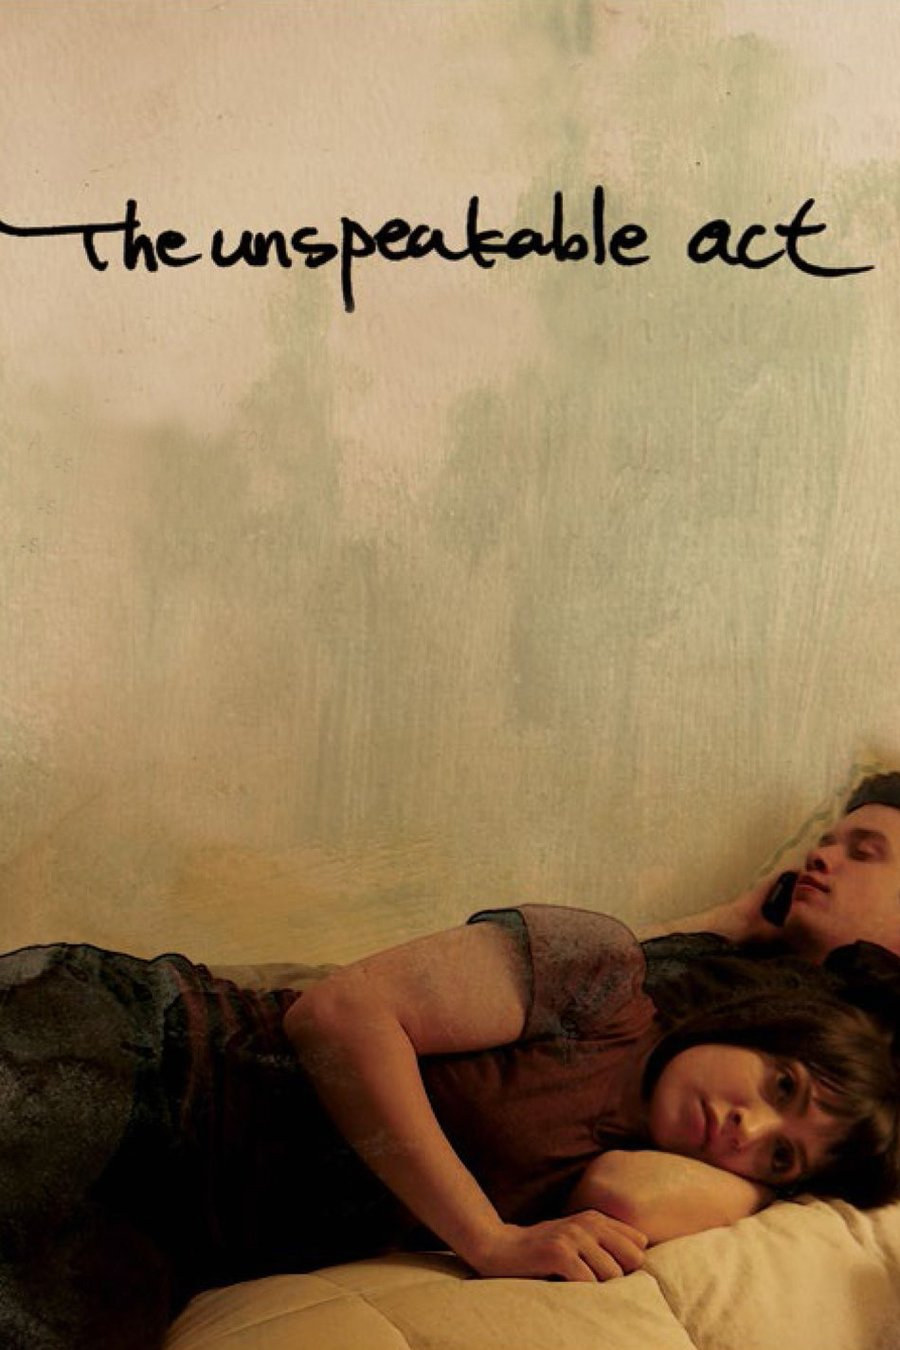 The Unspeakable Act